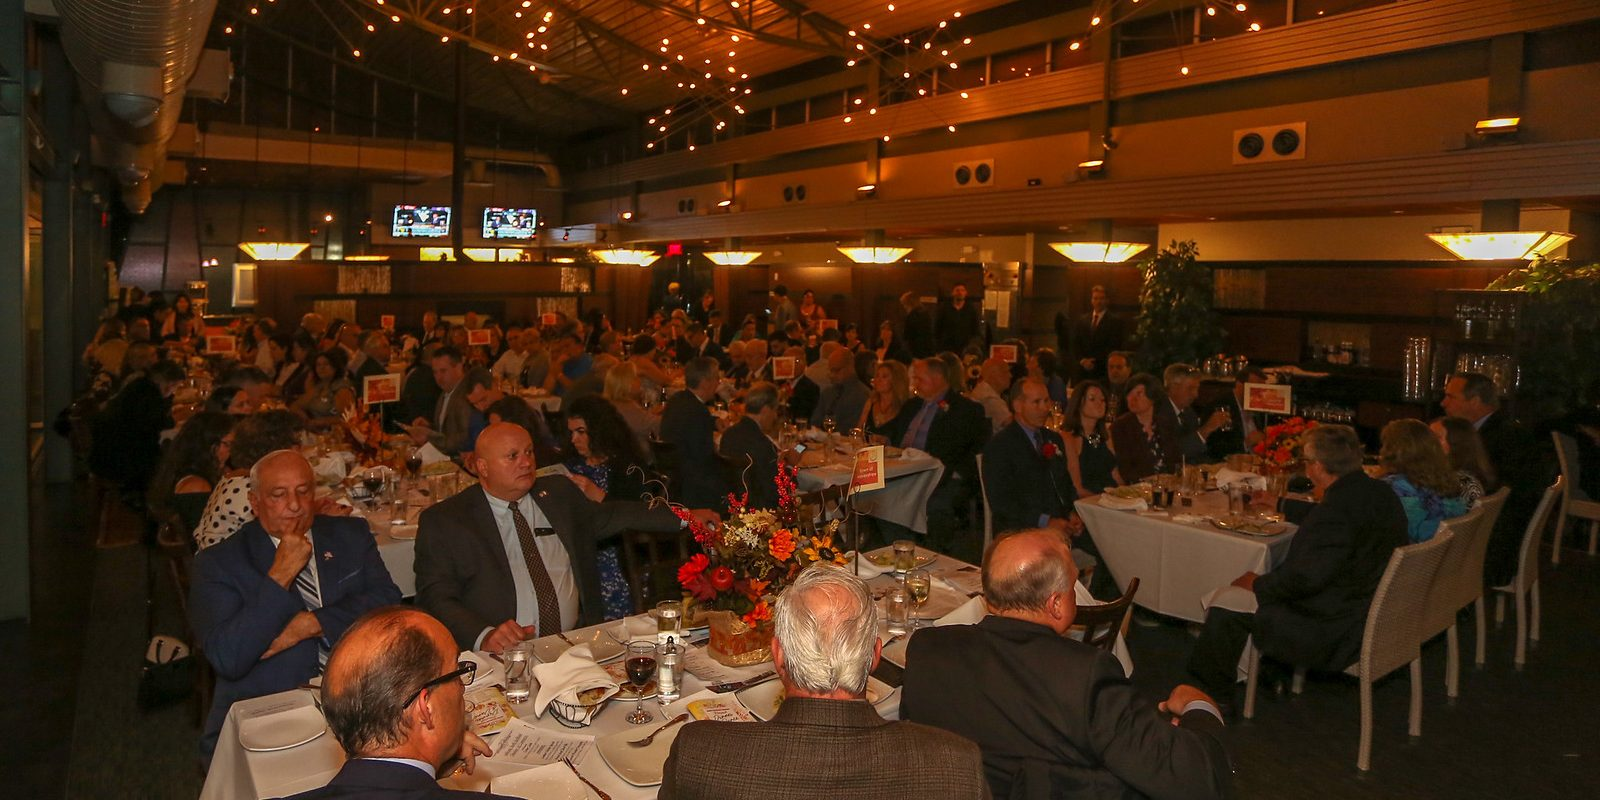 A Very Successful First Annual Harvest Dinner and Dance